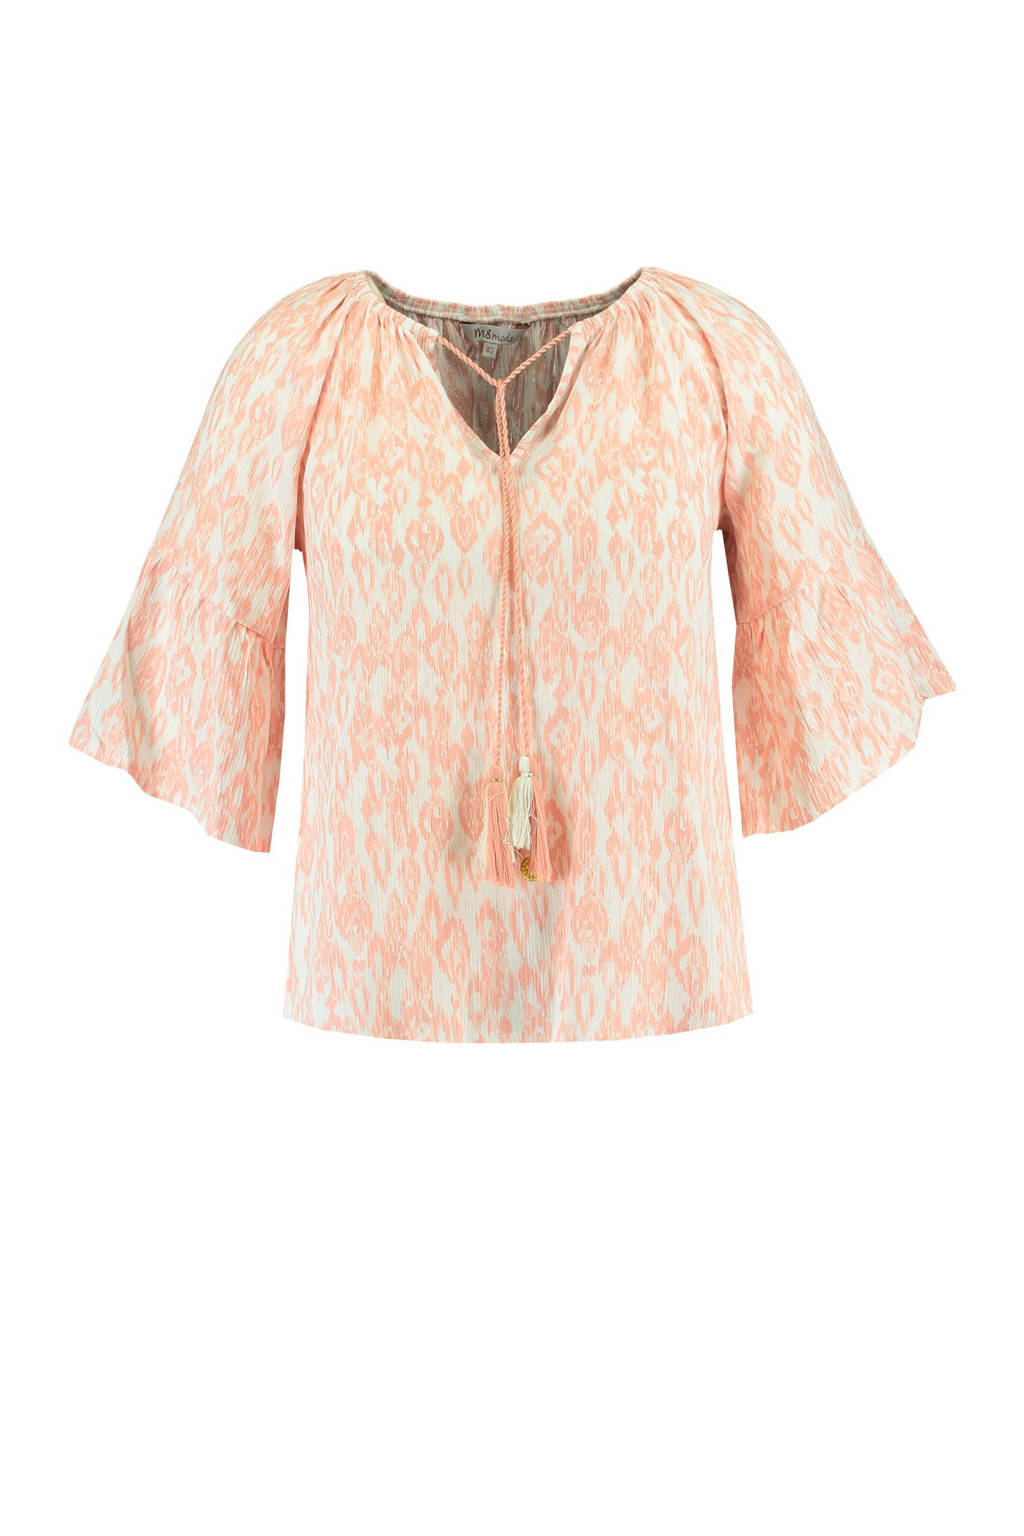 MS Mode top met all over print zalm, Zalm